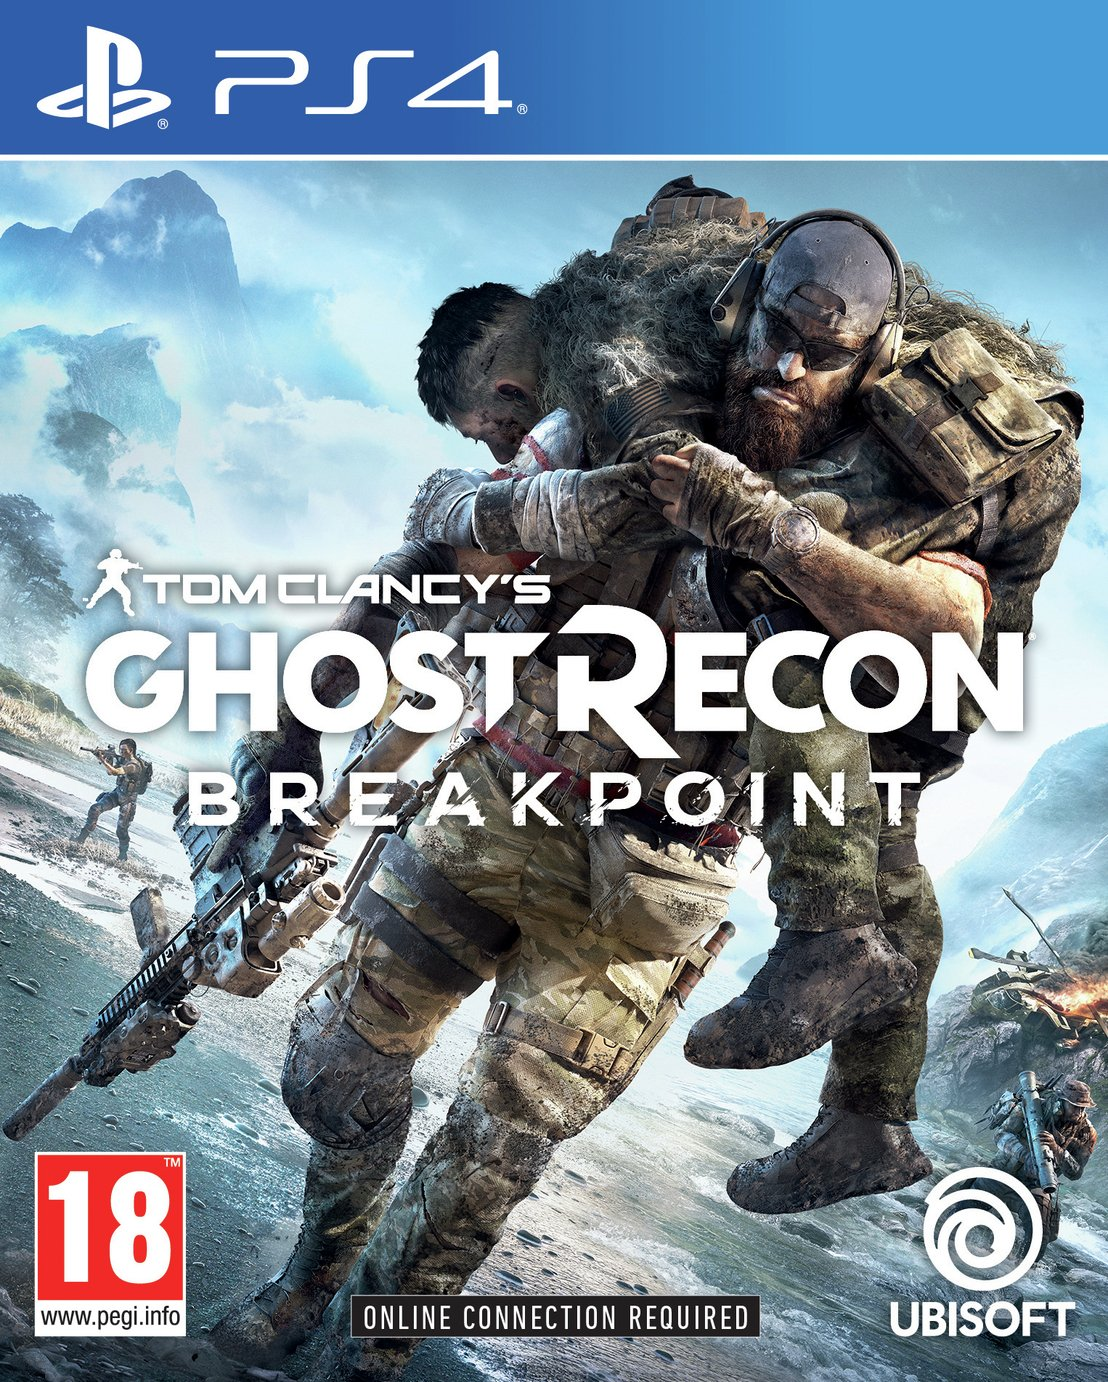 Ghost Recon Breakpoint PS4 Pre-Order Game